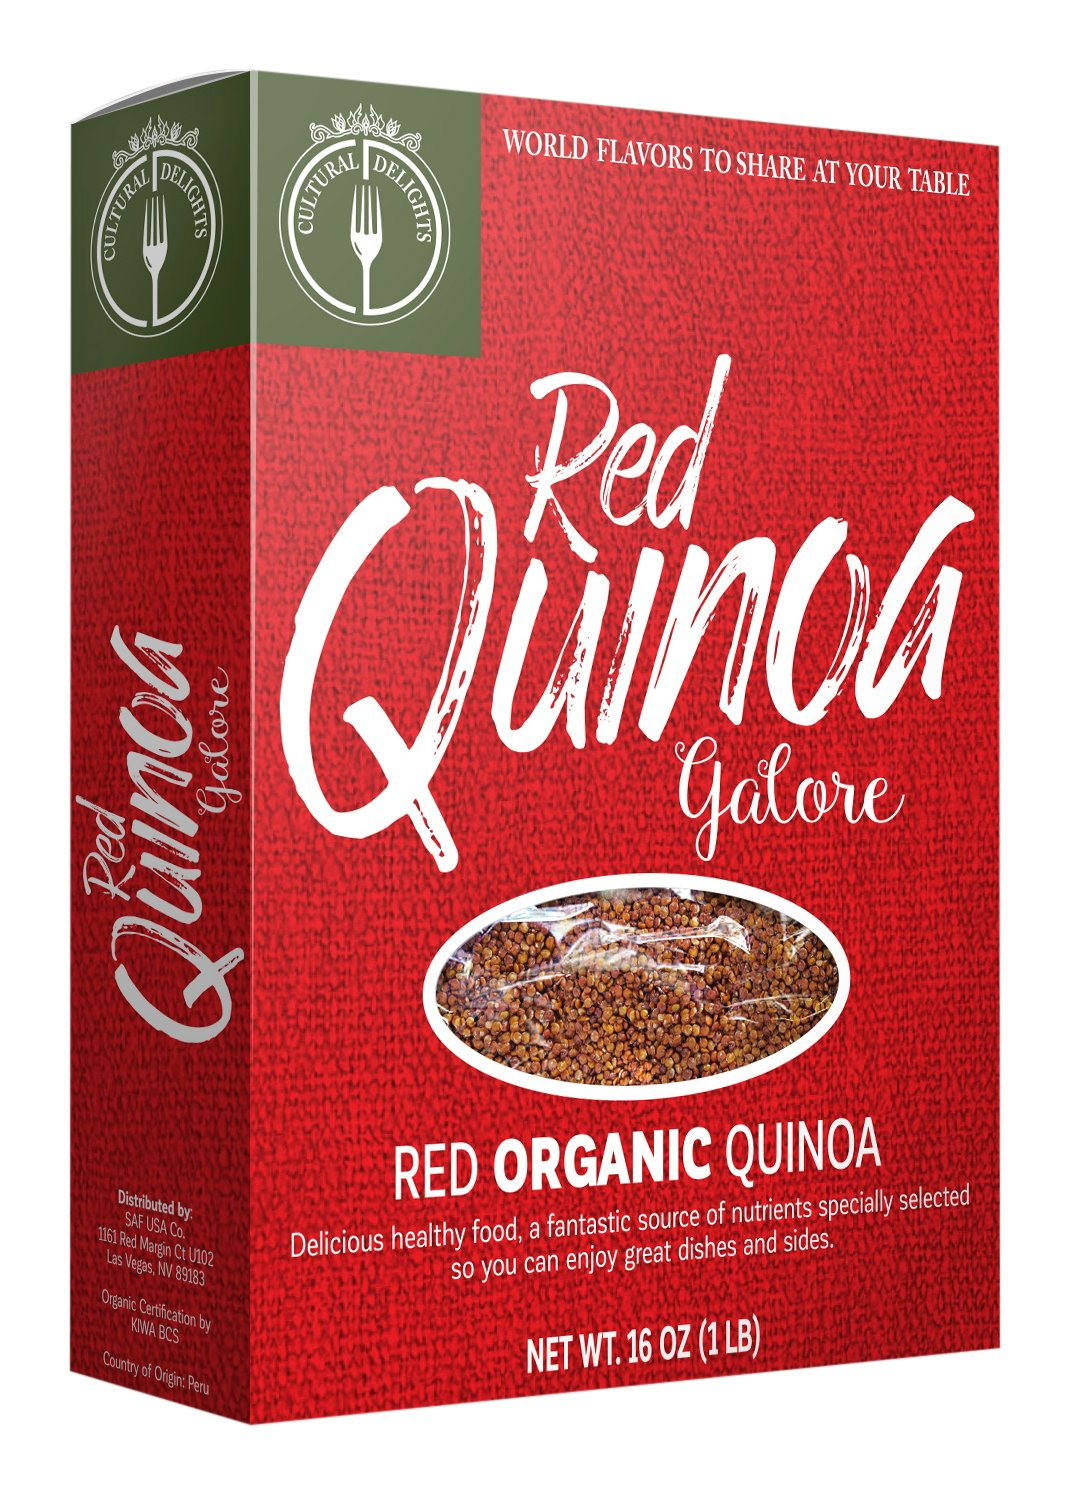 Culture Foods The Finest Organic Red Quinoa Peruvian Whole Grain 24 Piece Value Pack by Culture Foods